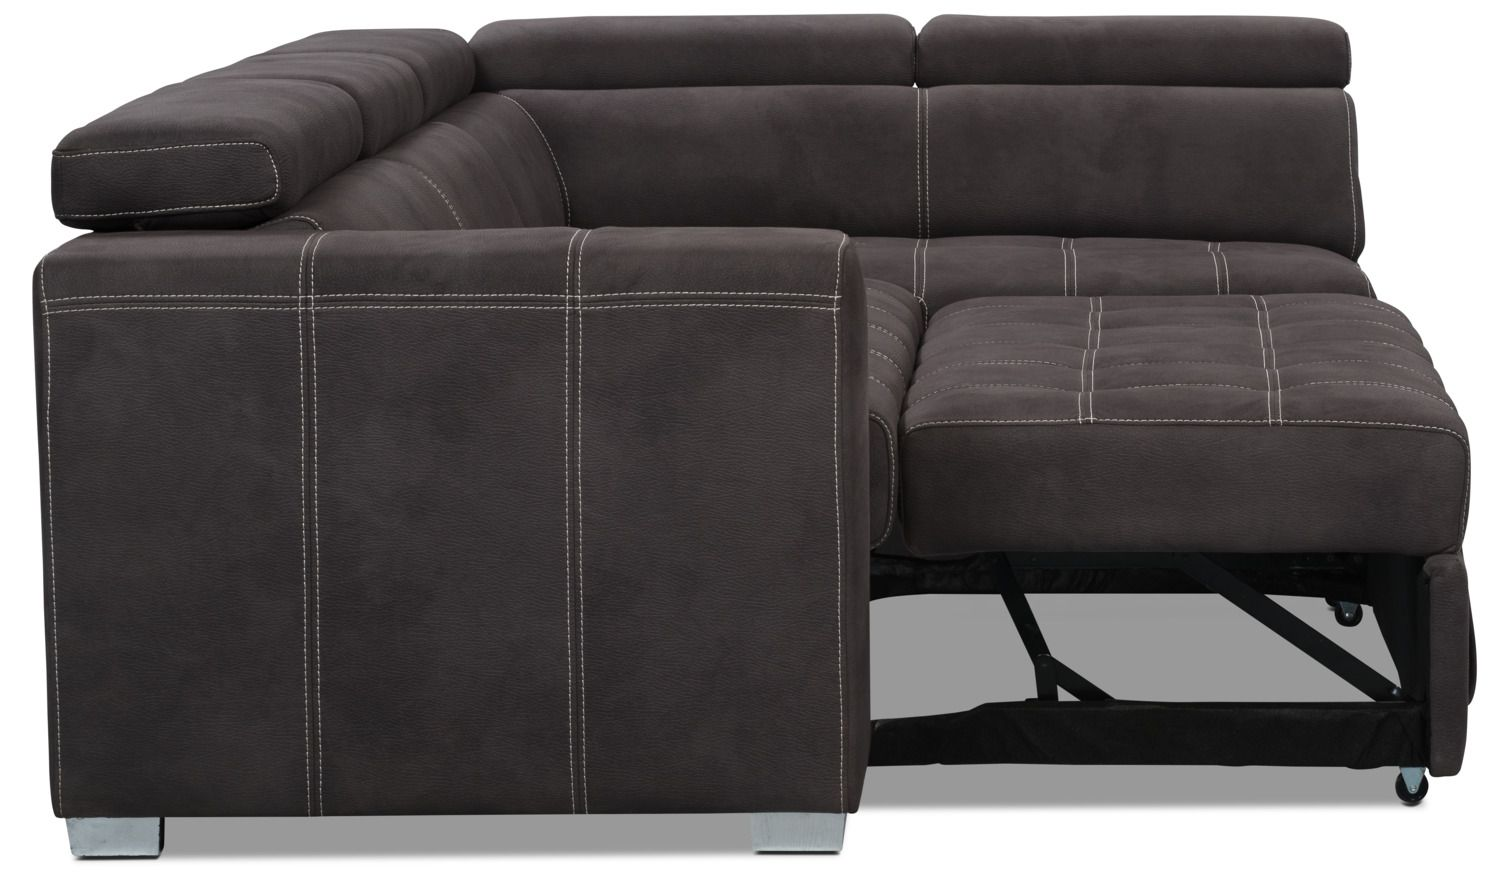 Faux Suede Sectional Sofa Outstanding Faux Suede Sectional Sofa 64 In Mart With Thesofa